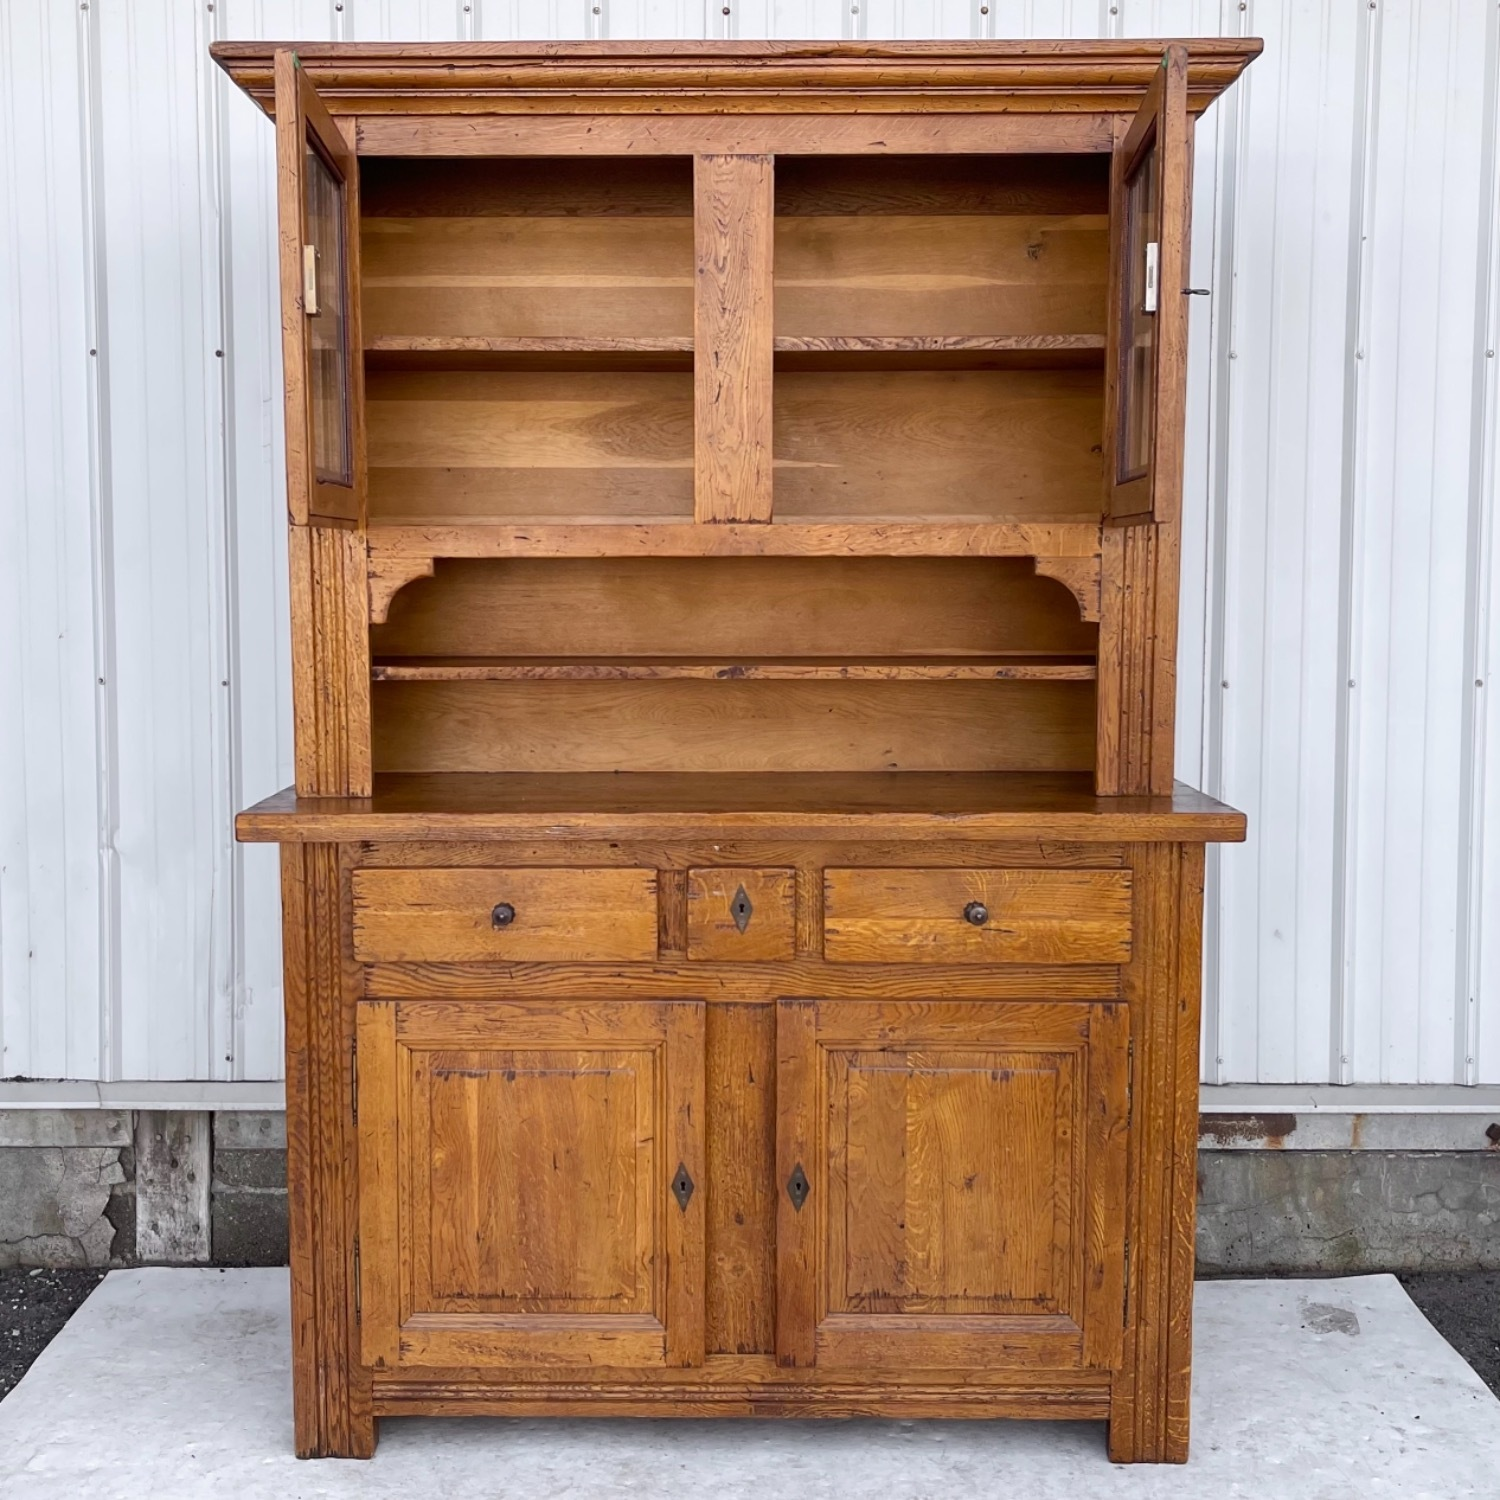 Antique Country Style Cupboard With Topper - image-1